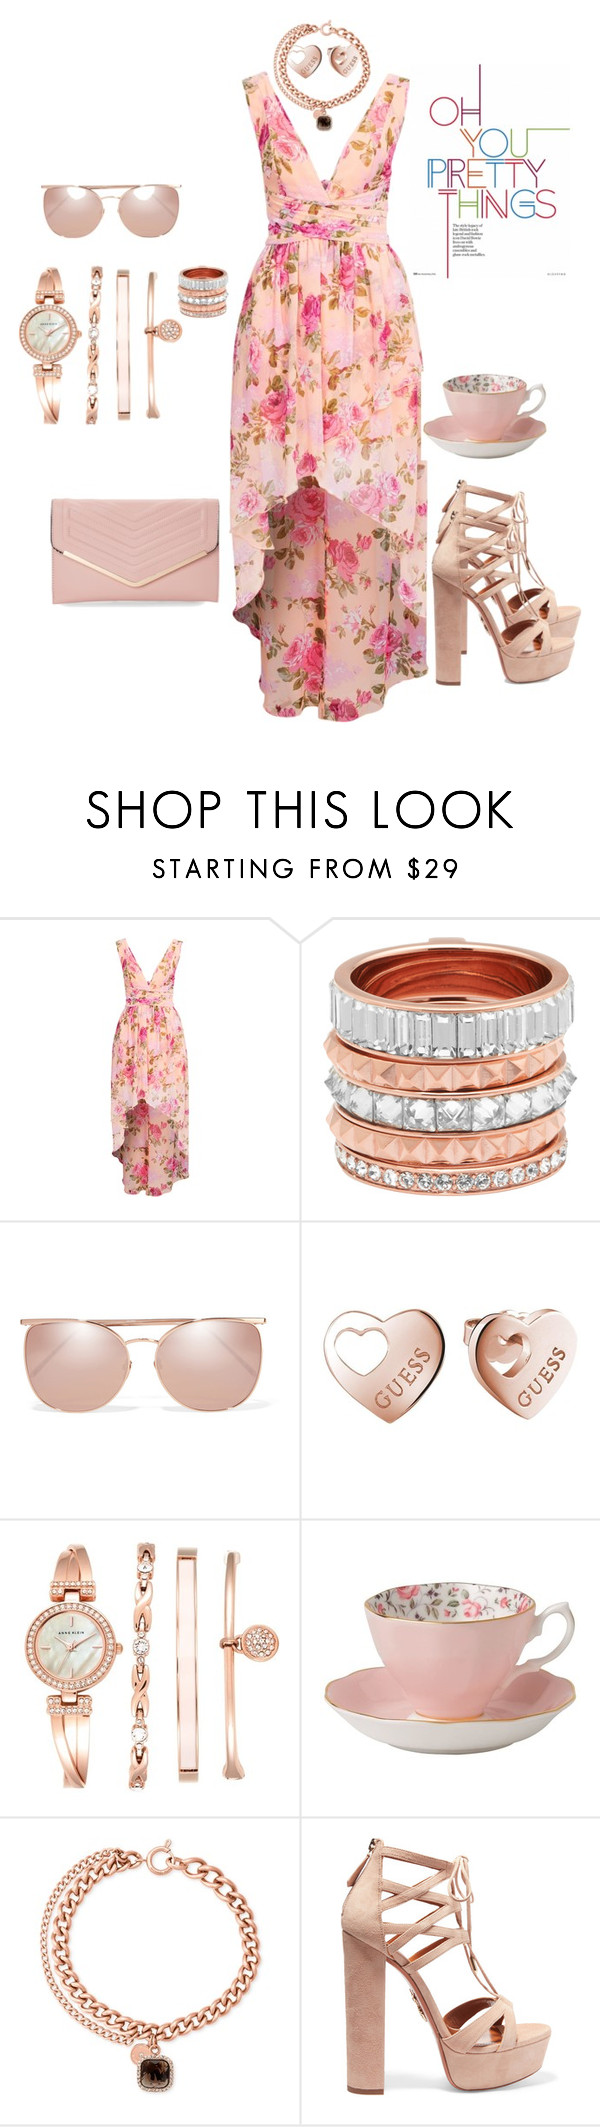 """""""Untitled #207"""" by gorgeouslor ❤ liked on Polyvore featuring Henri Bendel, Linda Farrow, GUESS, Anne Klein, Royal Albert, Michael Kors, Aquazzura and Sasha"""